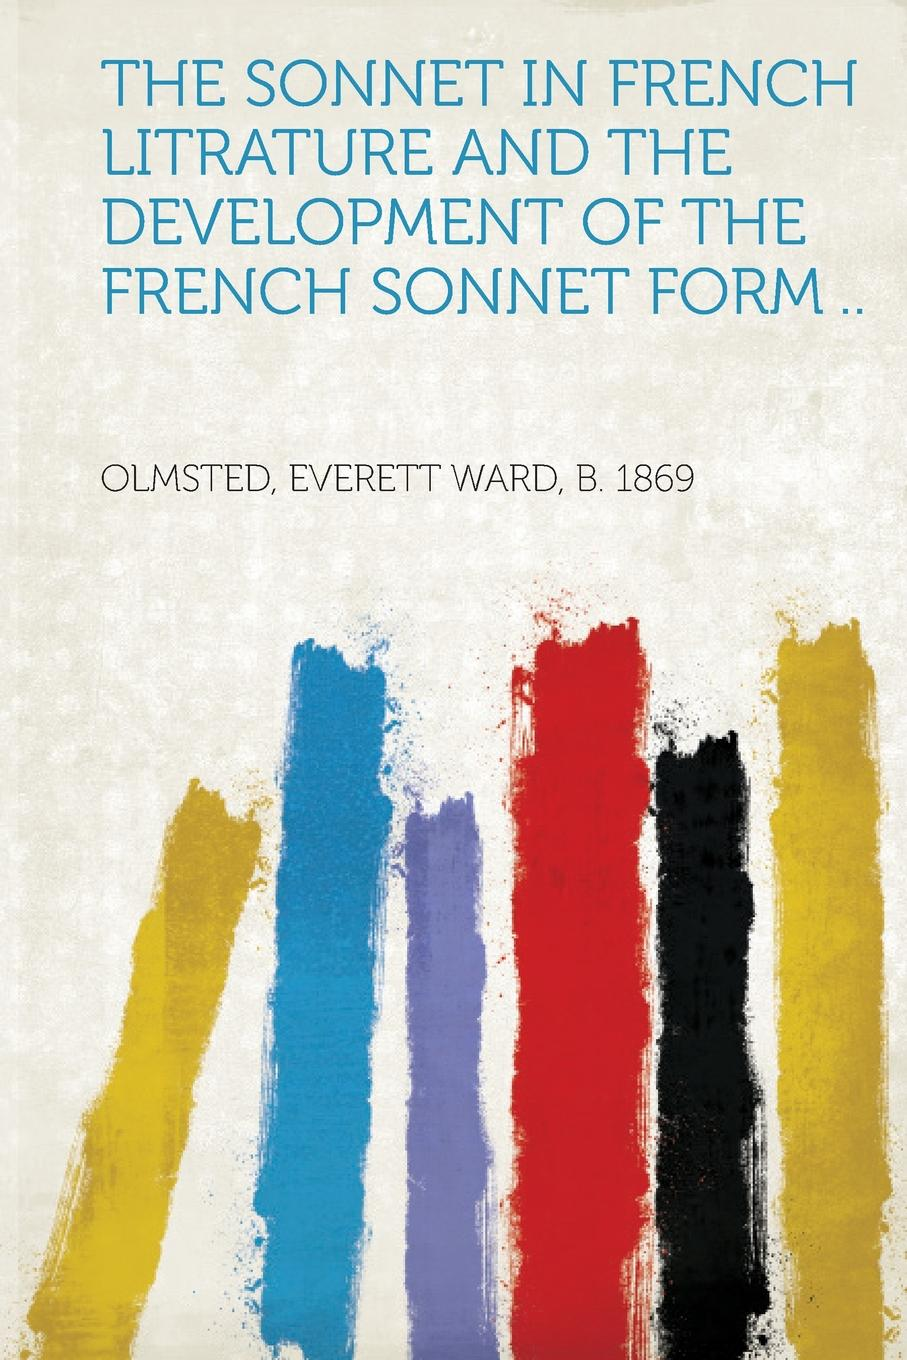 Olmsted Everett Ward B. 1869 The Sonnet in French Litrature and the Development of the French Sonnet Form ..